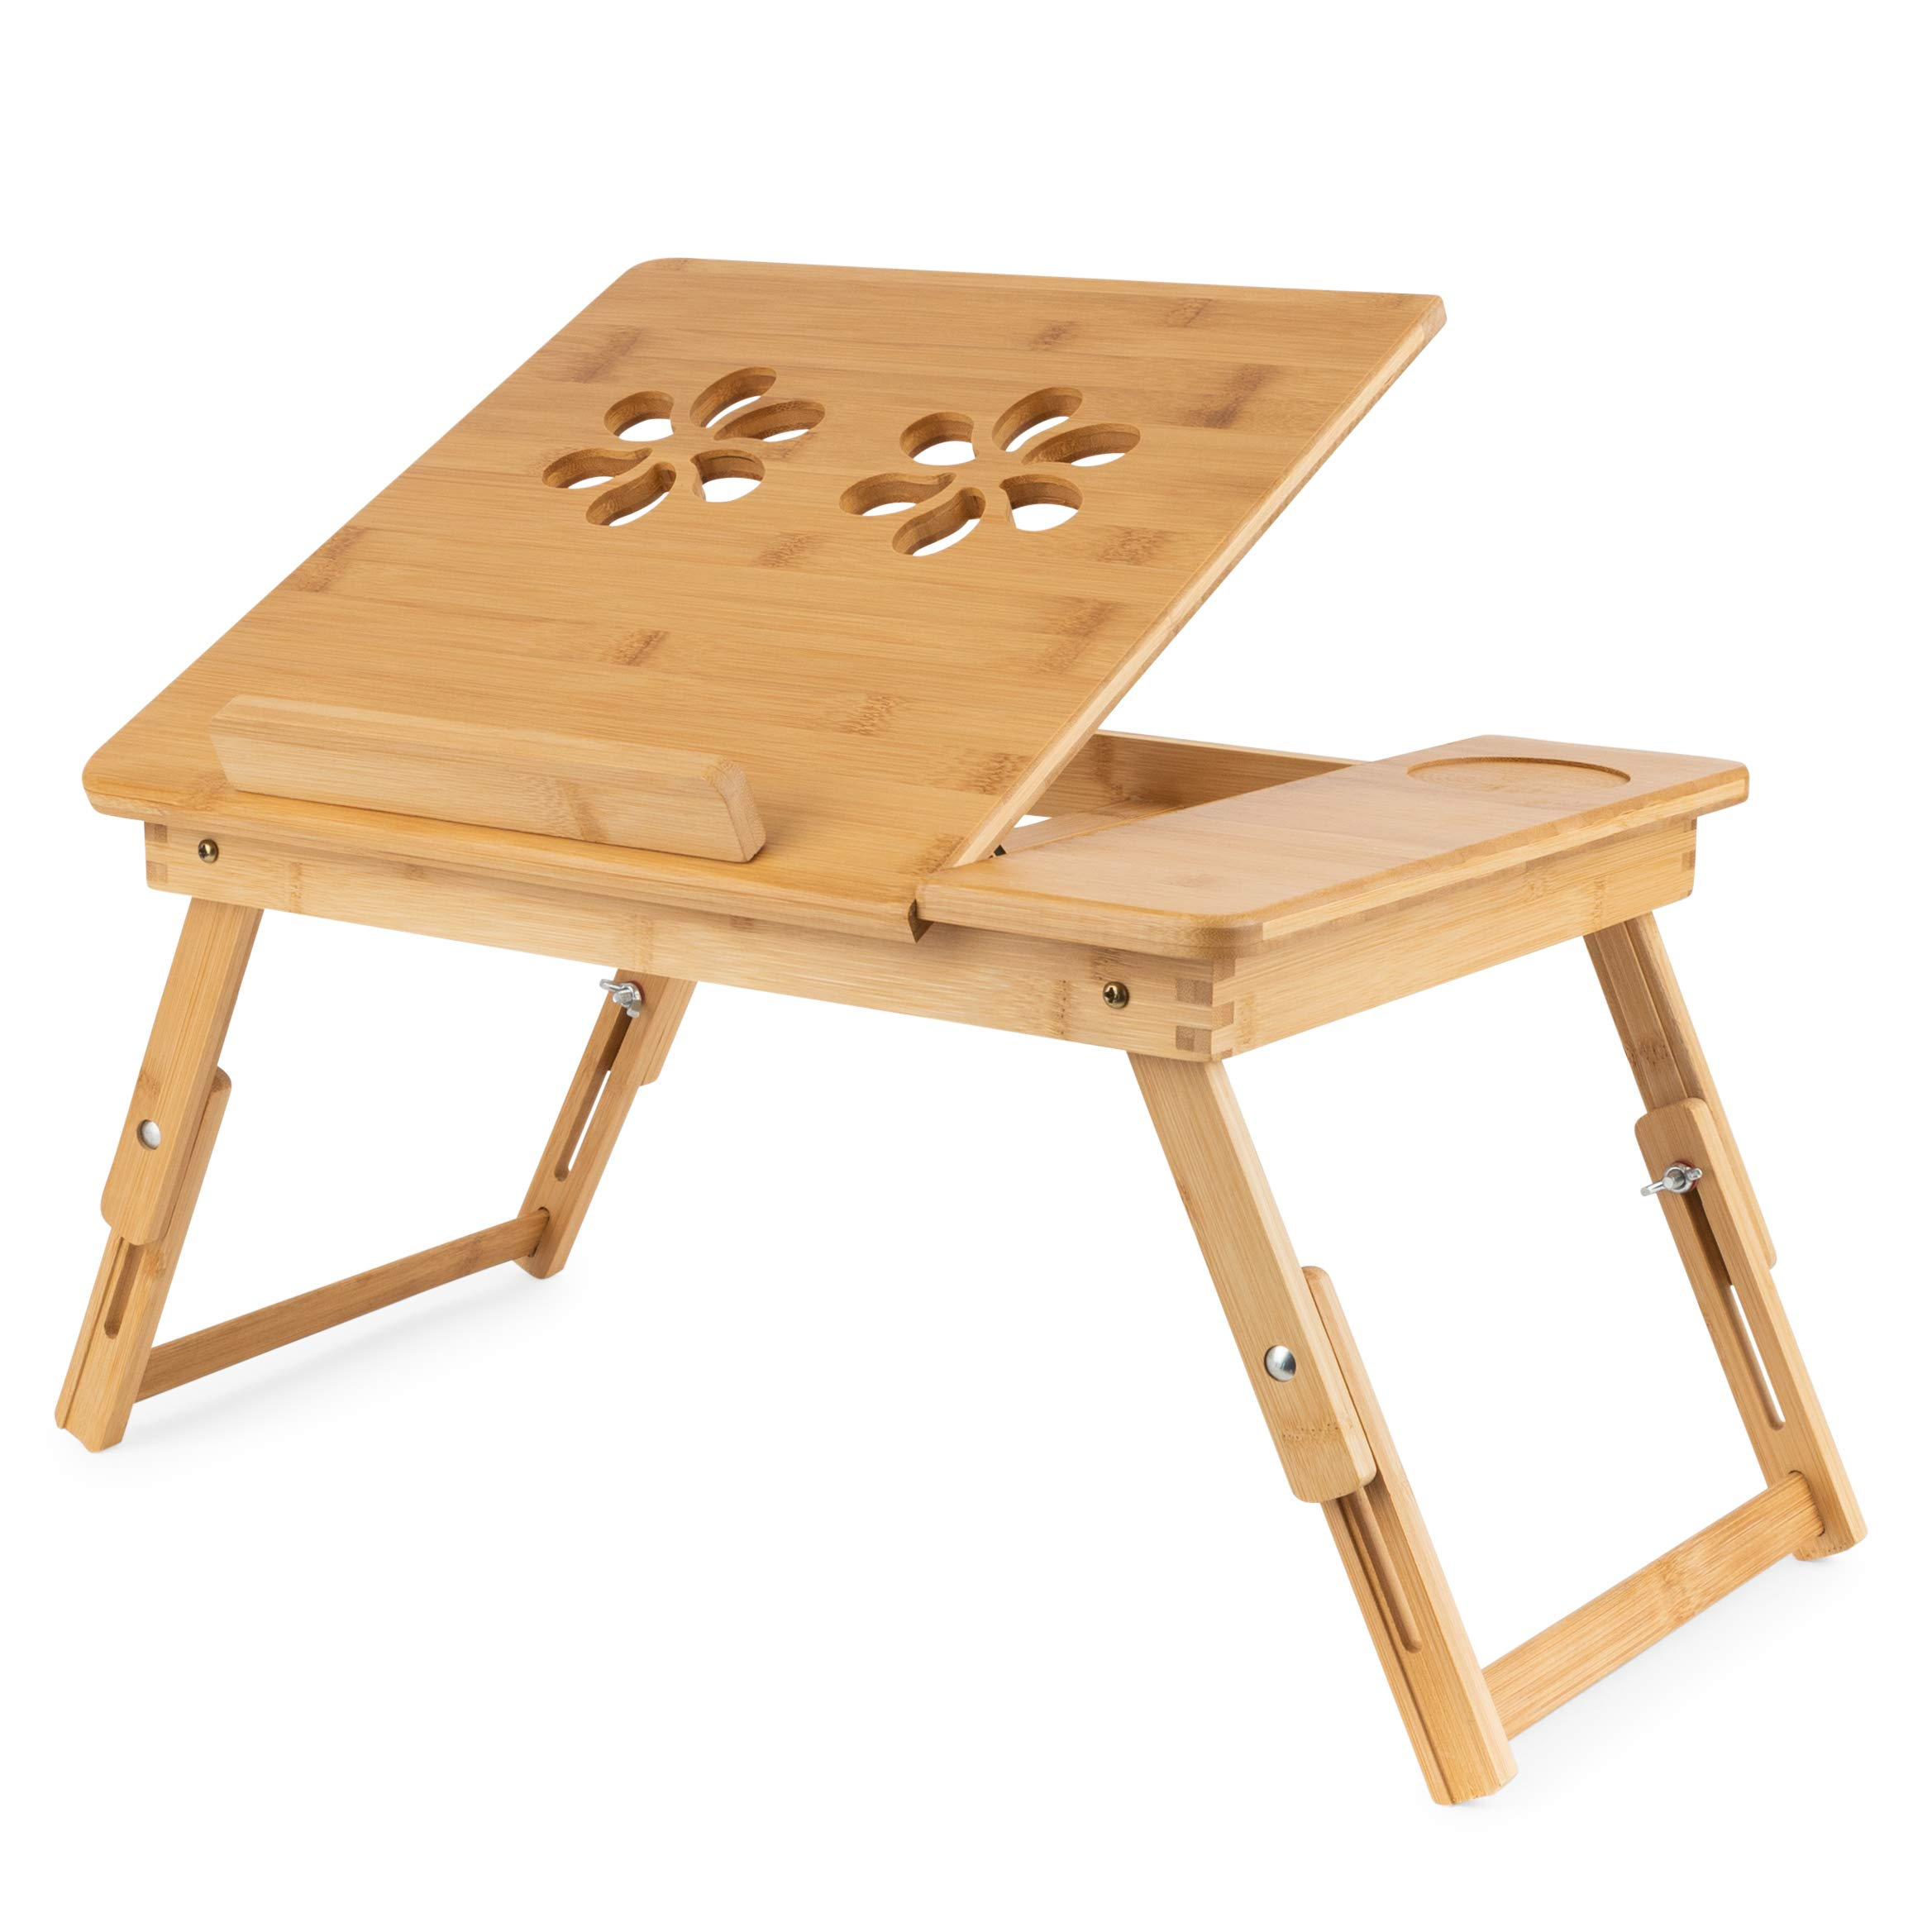 Olivia & Aiden Bed Tray Table and Laptop Desk (Bamboo) Tilting Surface for Reading, Tablets, Serving, and Eating Food | Adjustable Legs | Kids, Adults